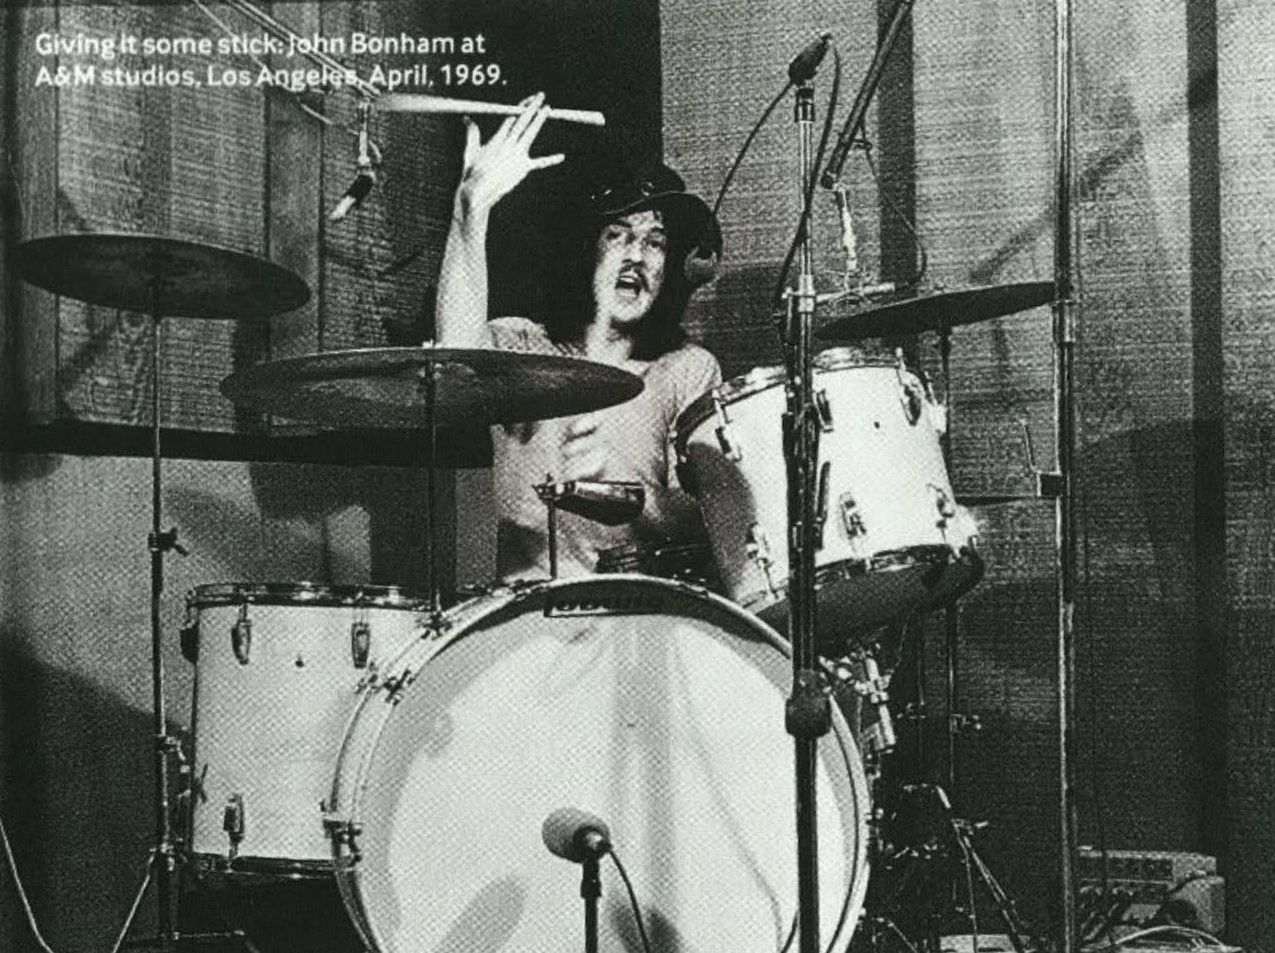 Giving it some stick: John Bonham at A&M studio, Los Angeles, April, 1969.